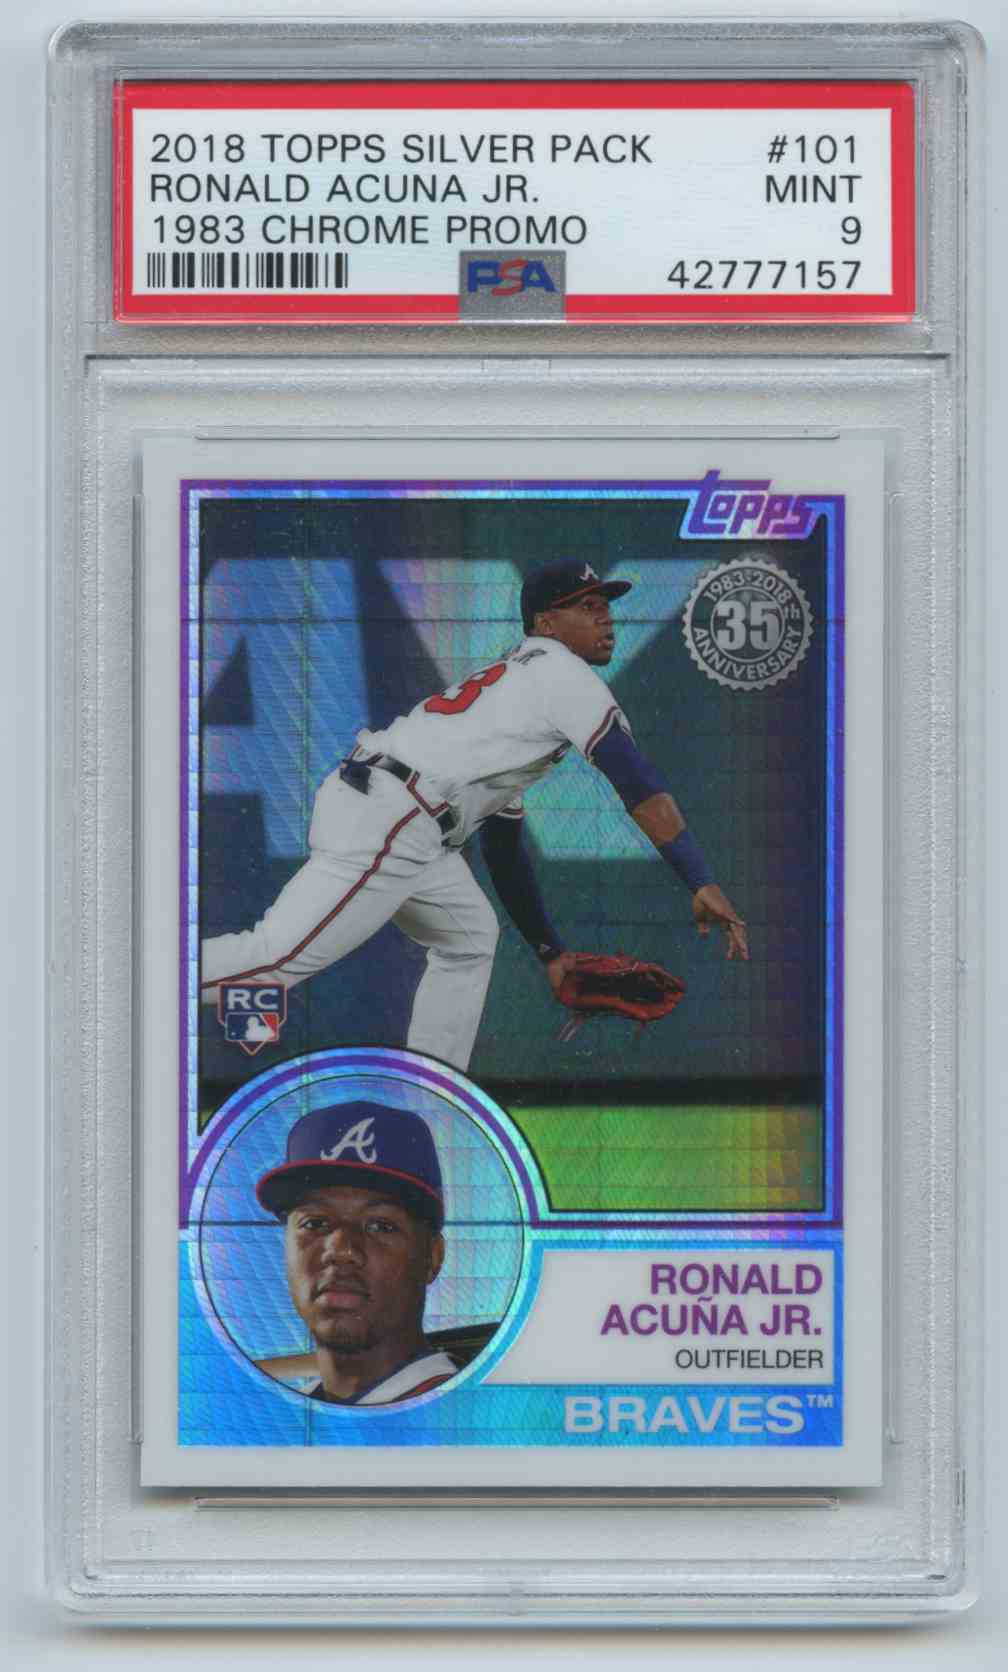 2018 Topps Chrome Silver Pack 1983 Ronald Acuna Jr 101